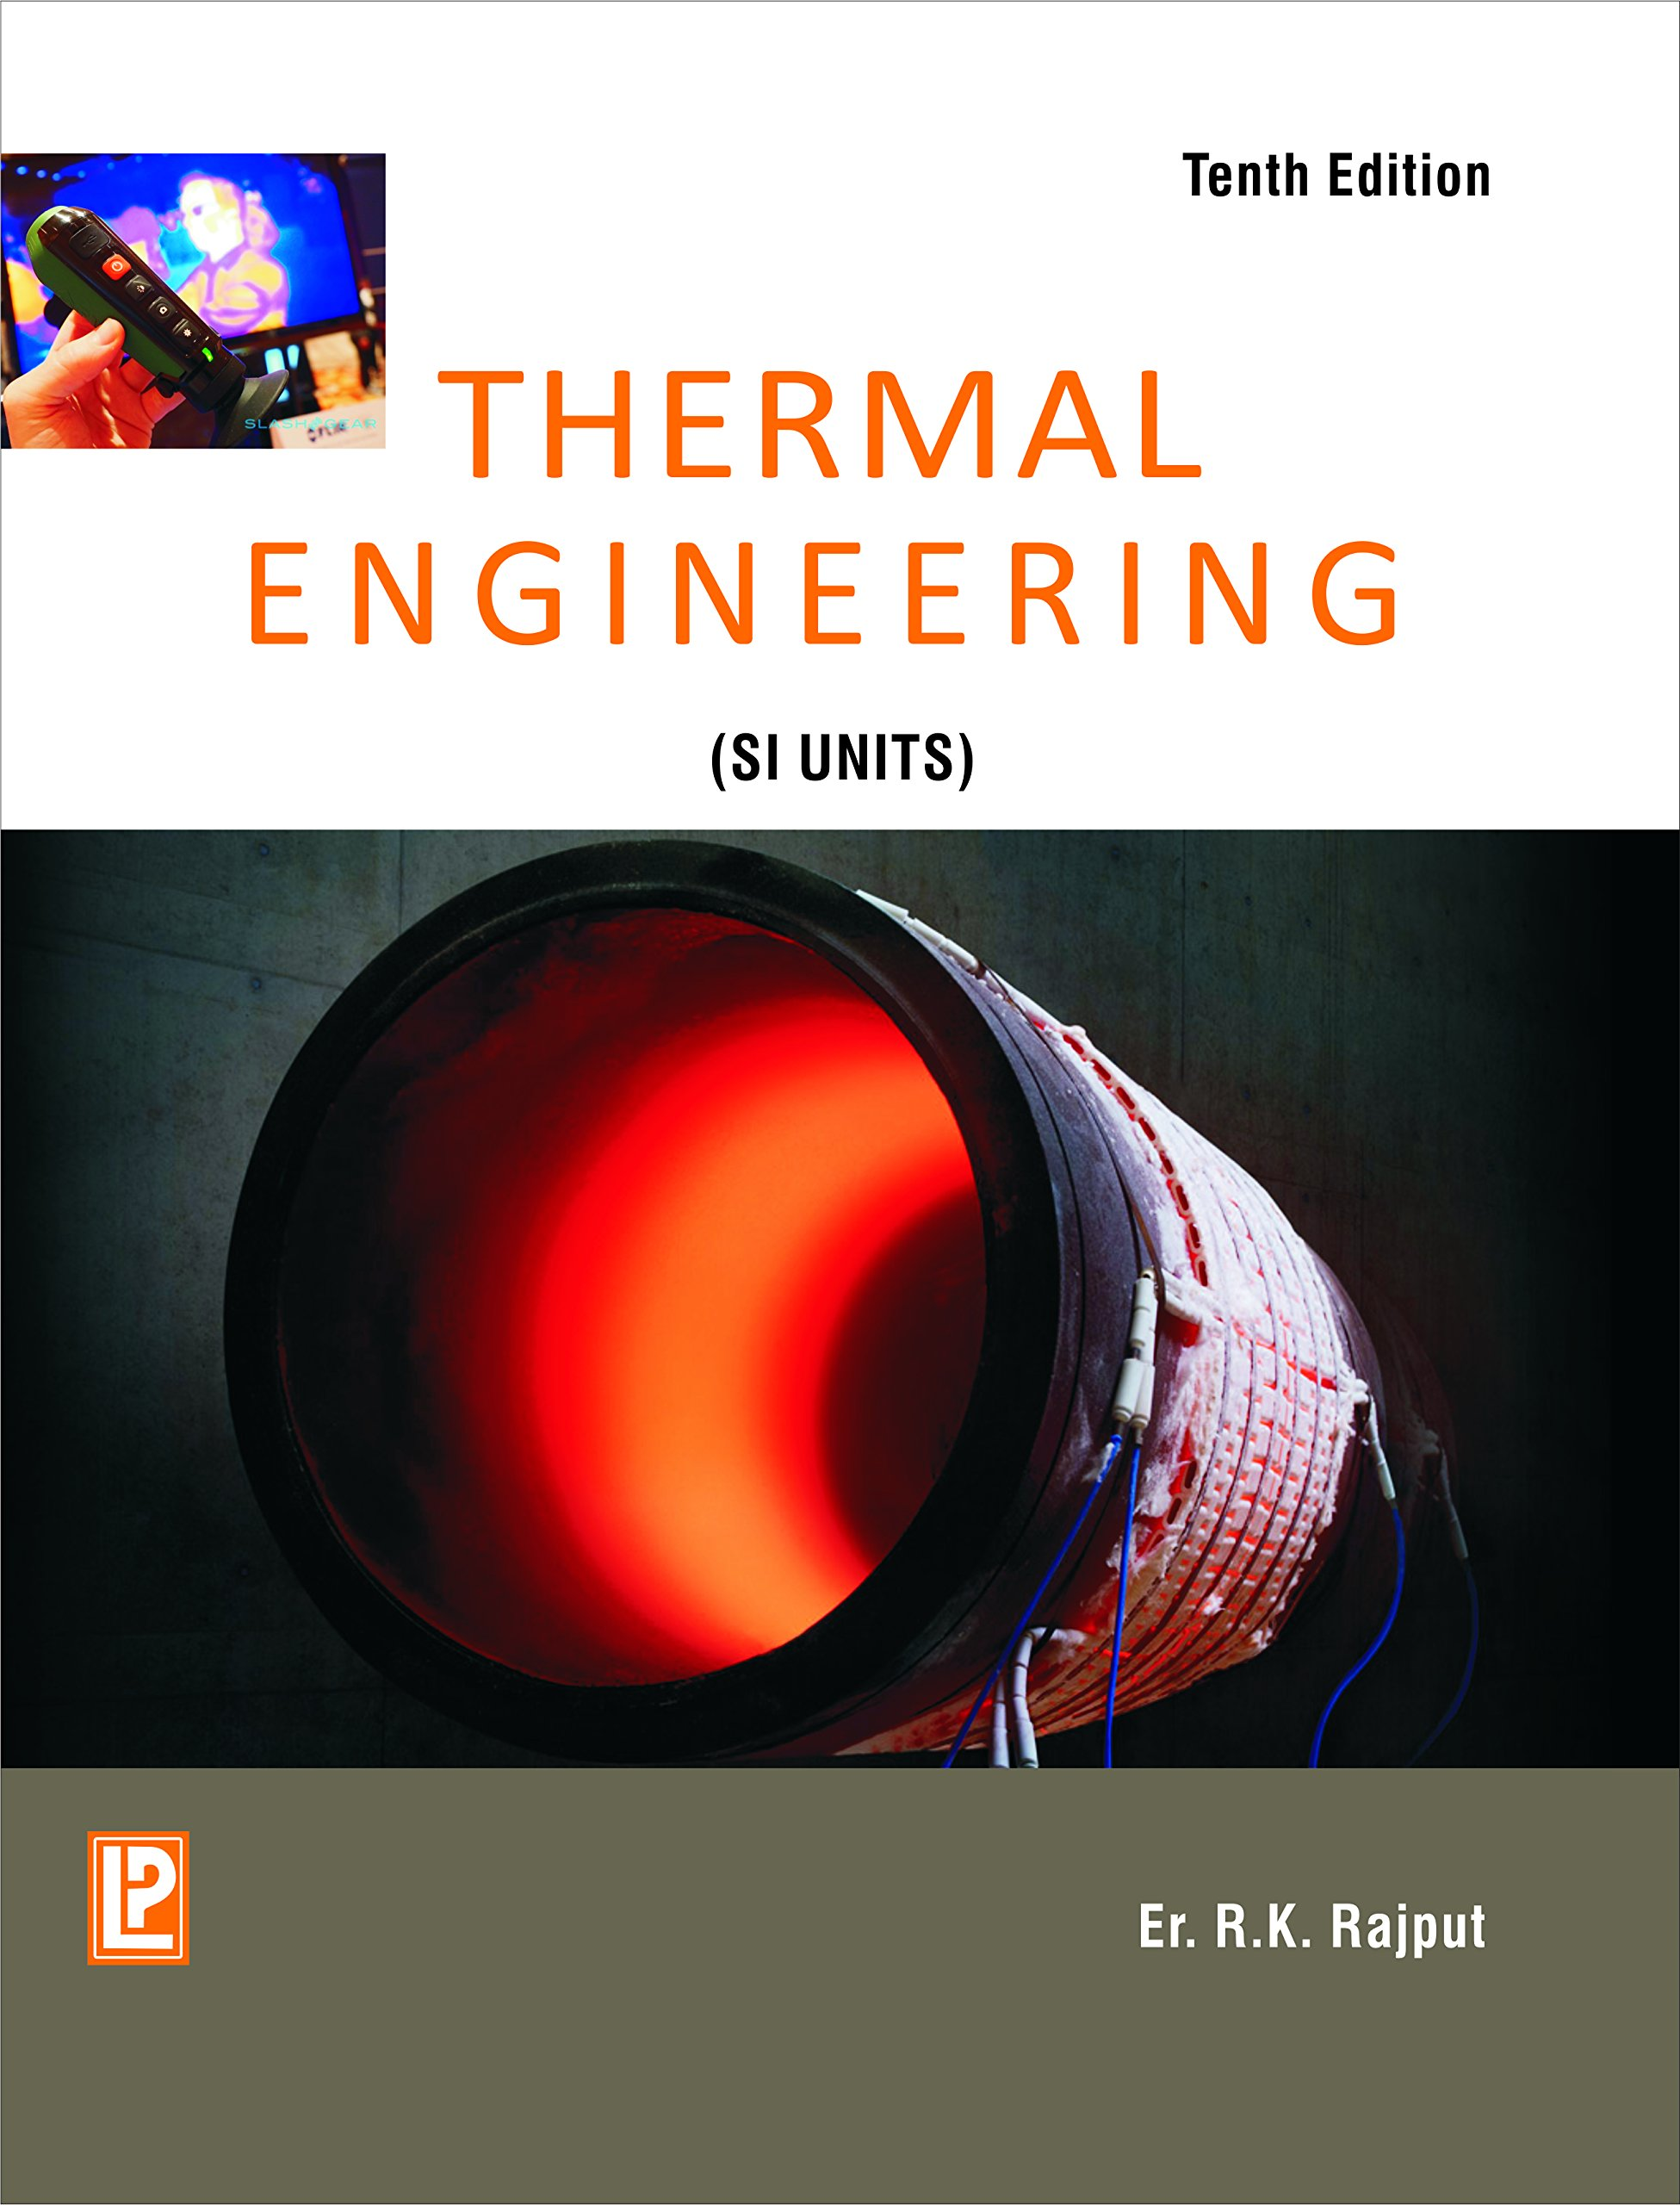 thermal engineering by rk rajput 10th edition pdf free download